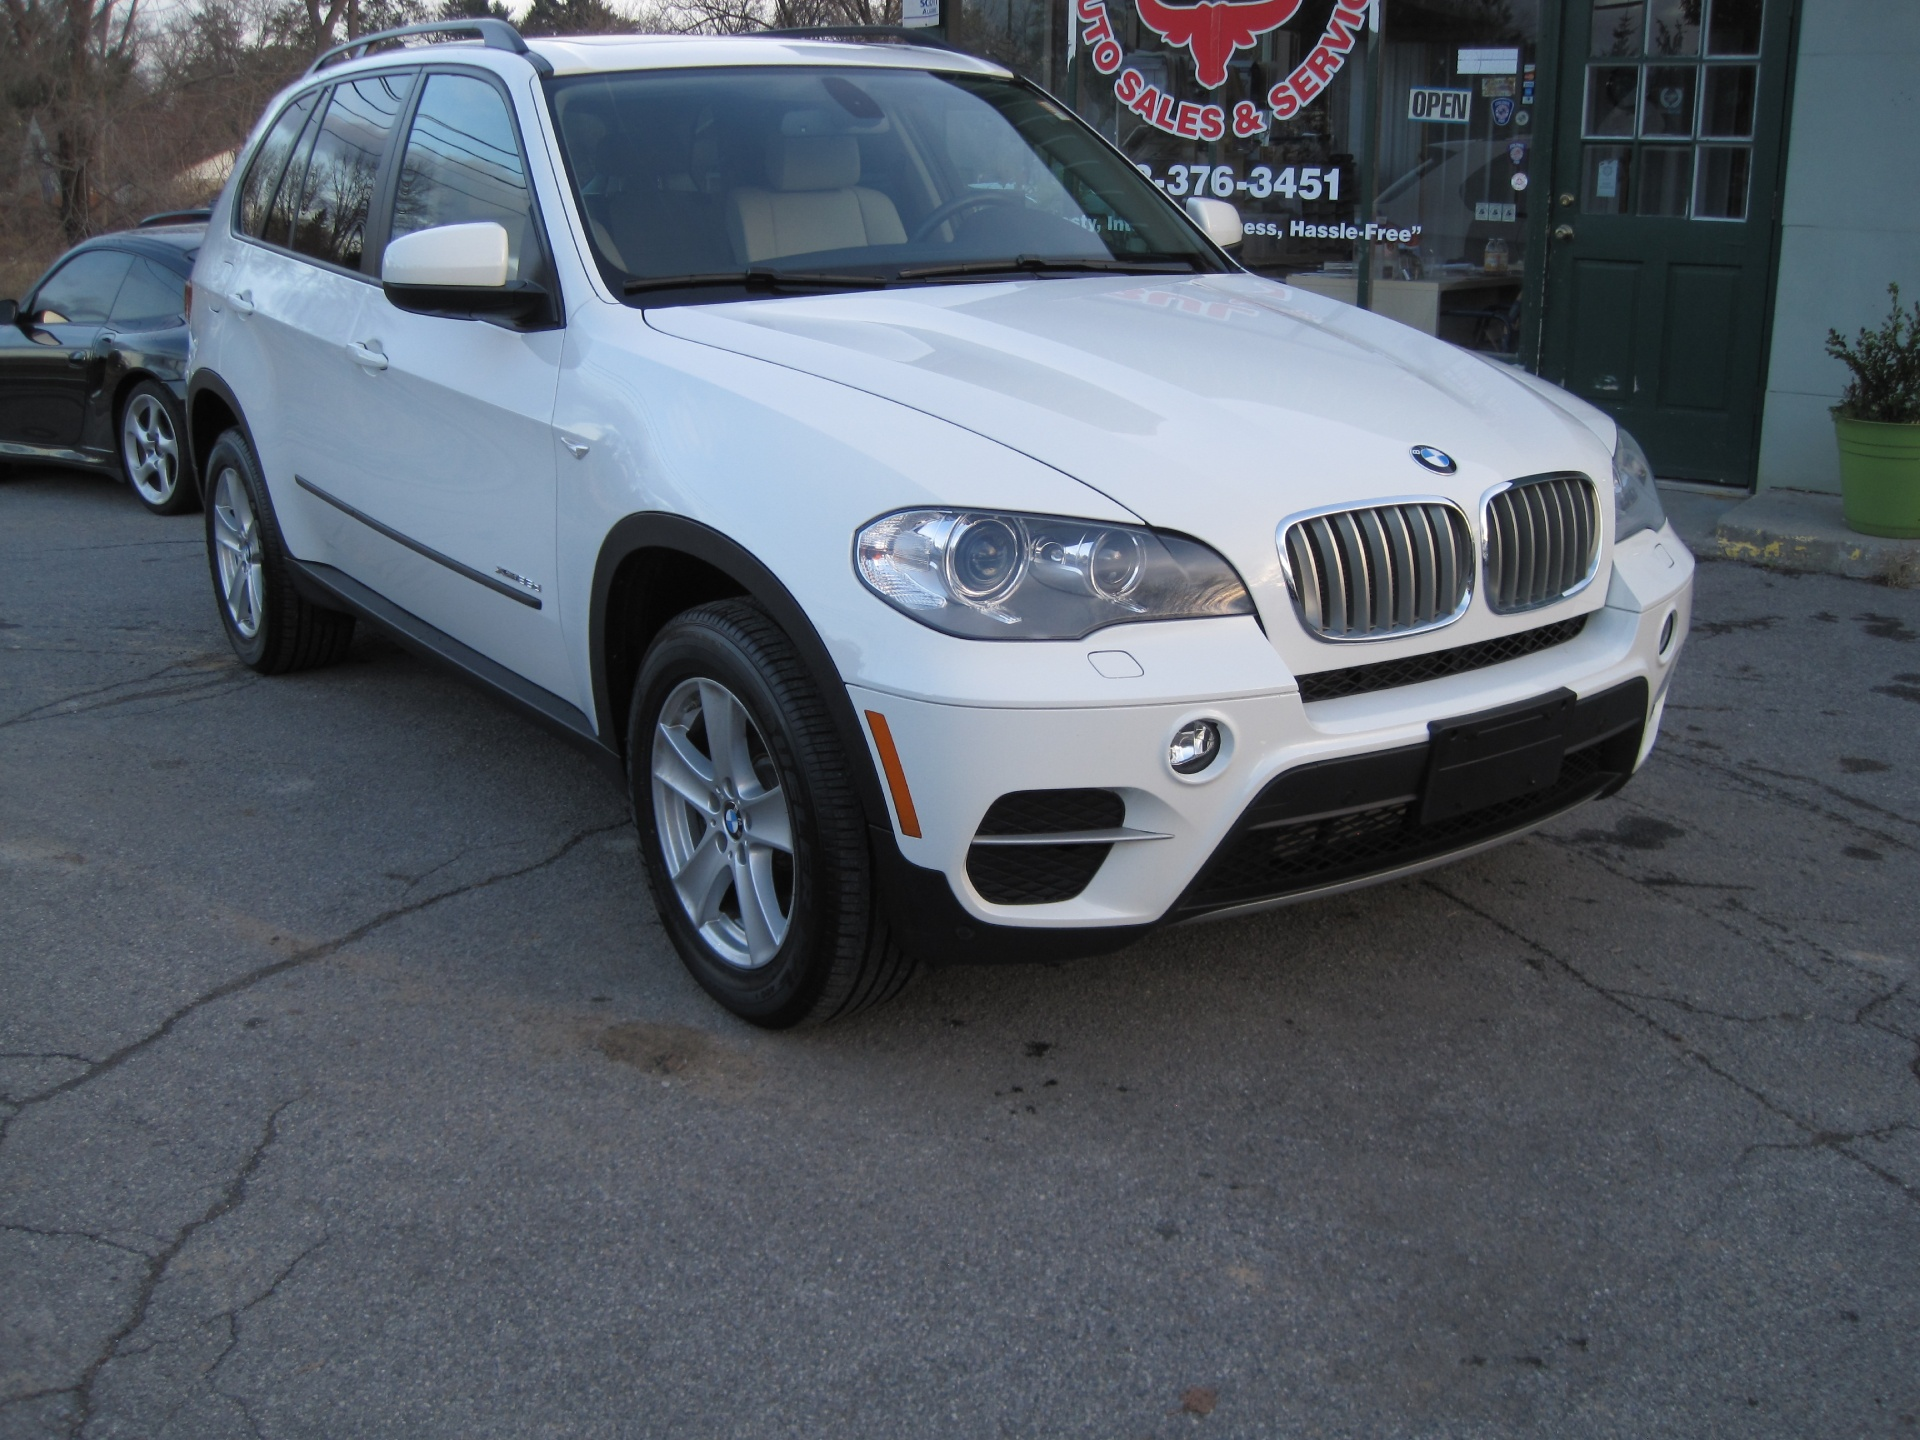 2012 bmw x5 xdrive35d awd diesel loaded msrp was 63 345 stock 14203 for sale near albany ny. Black Bedroom Furniture Sets. Home Design Ideas